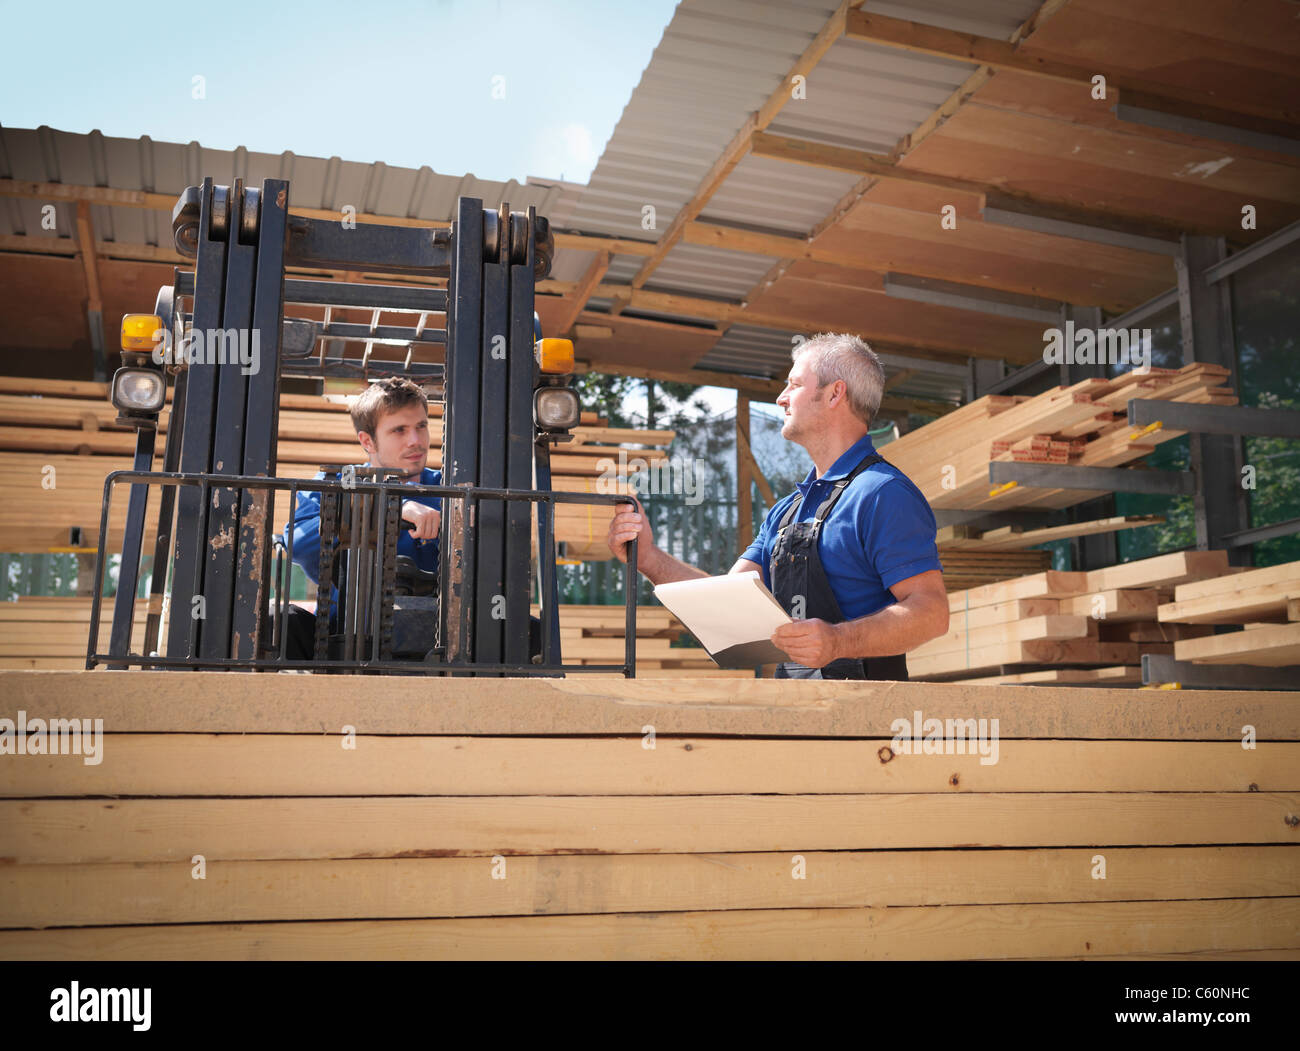 Worker carrying planks on forklift - Stock Image